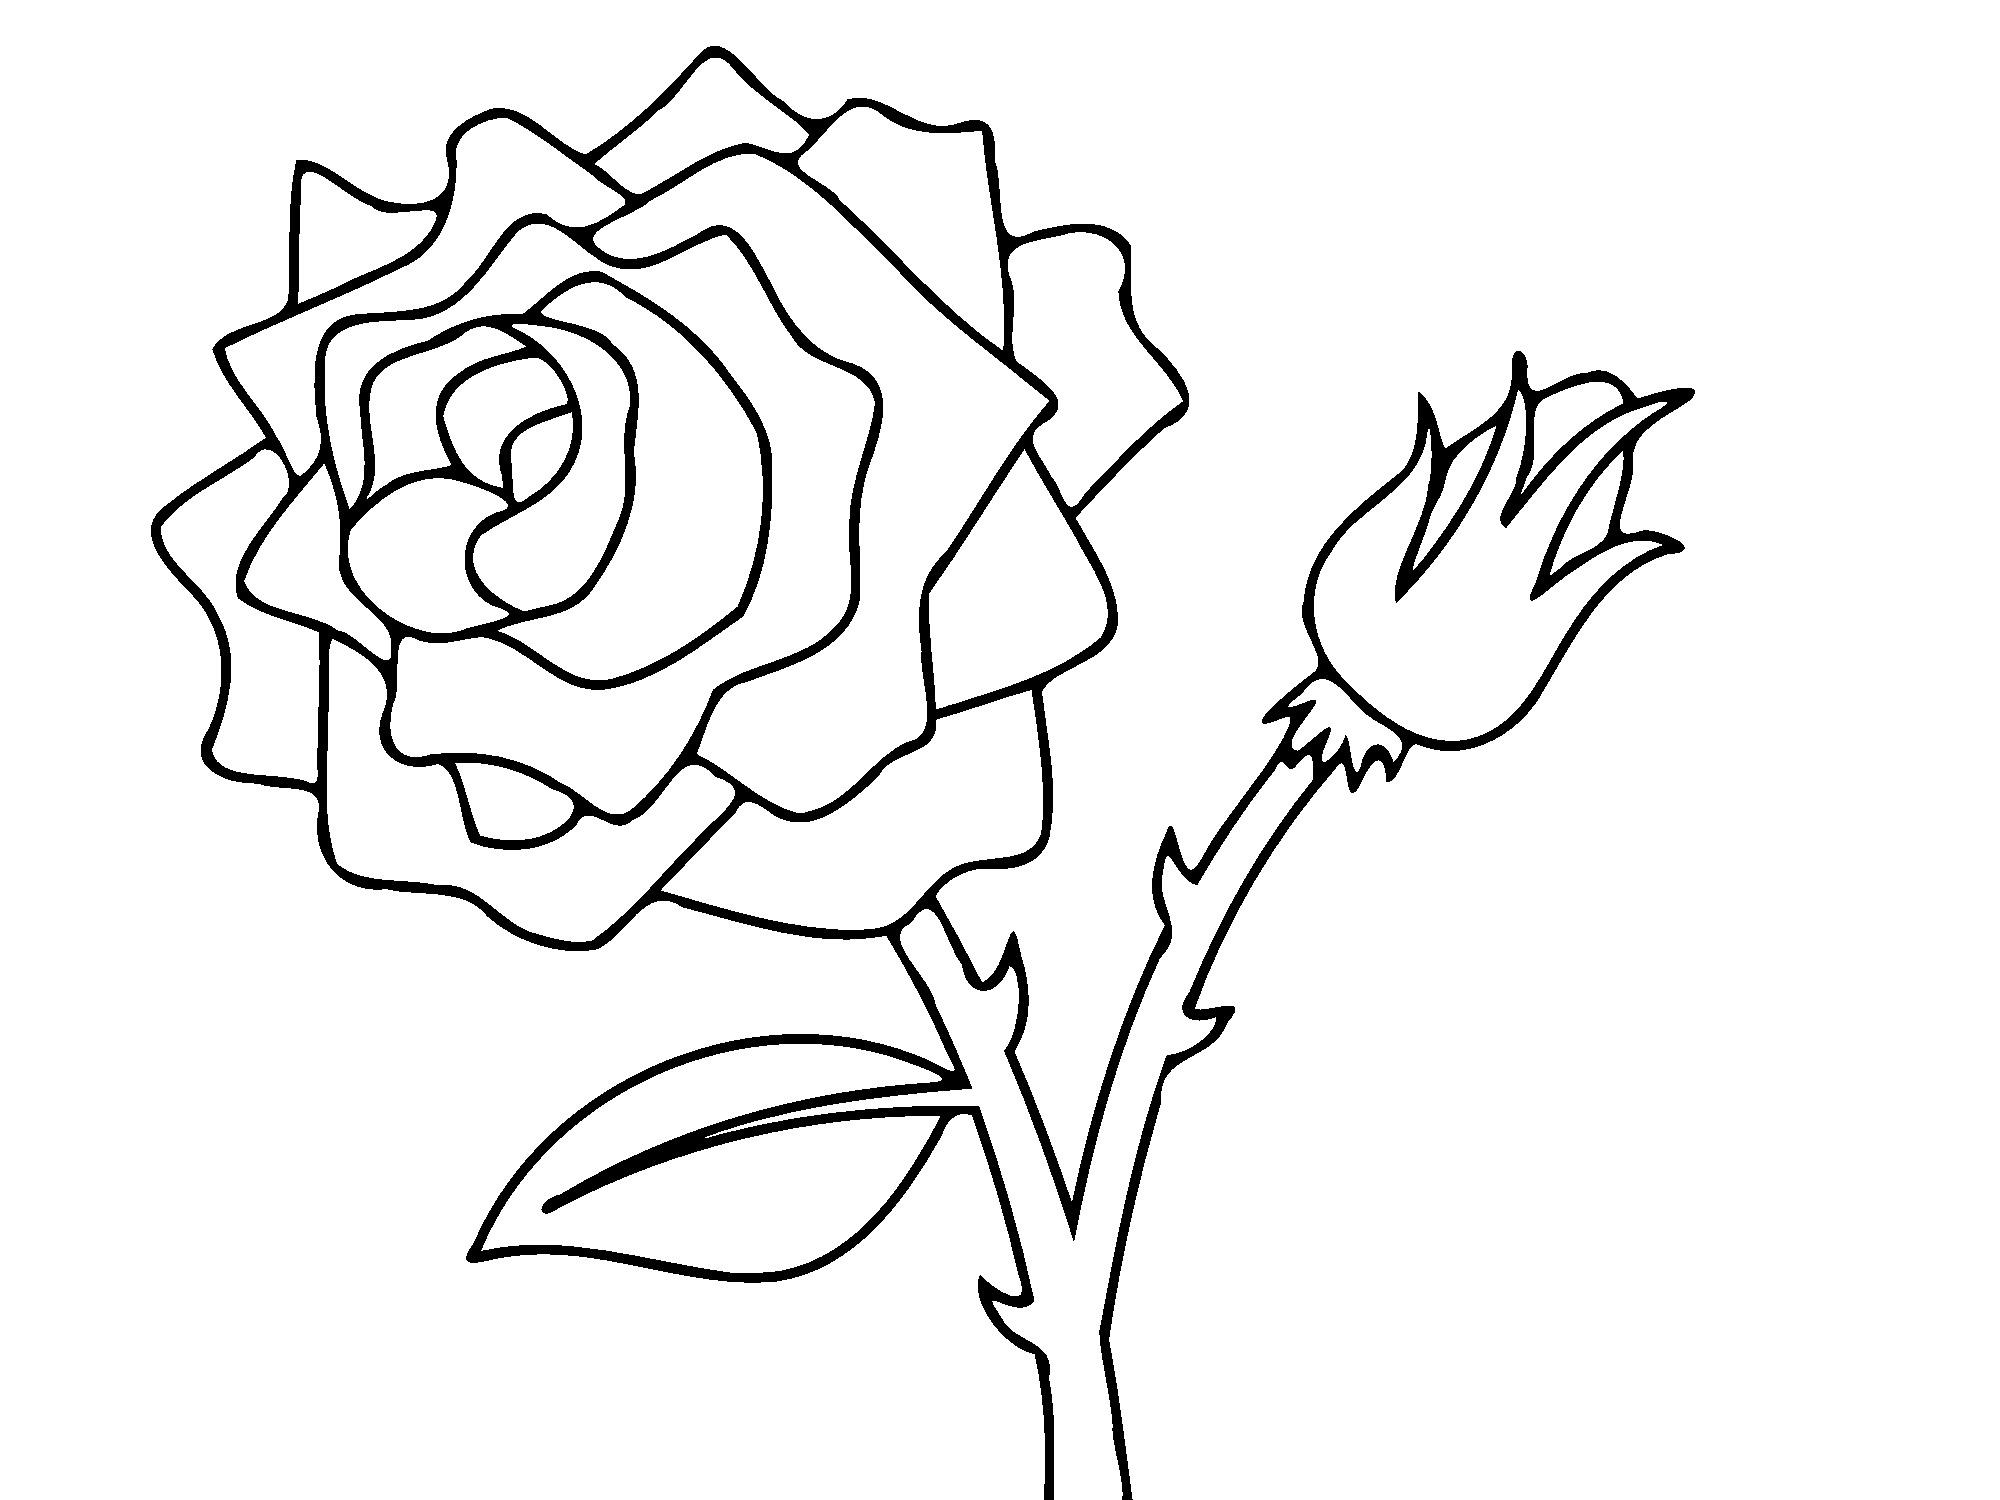 free printable rose coloring pages rose coloring pages printable pages rose coloring free printable